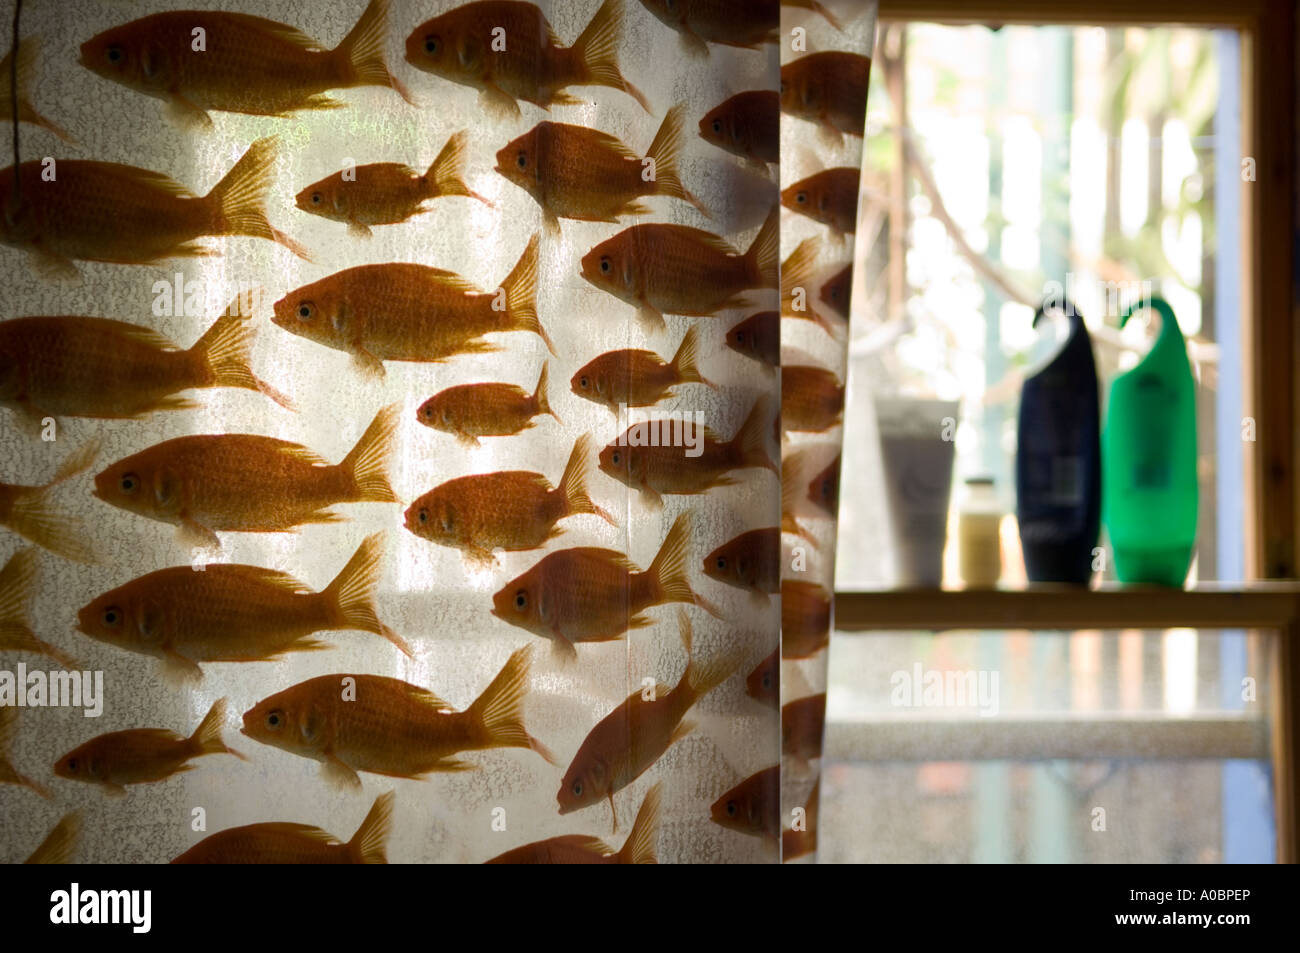 Shower Curtain With Goldfish Design